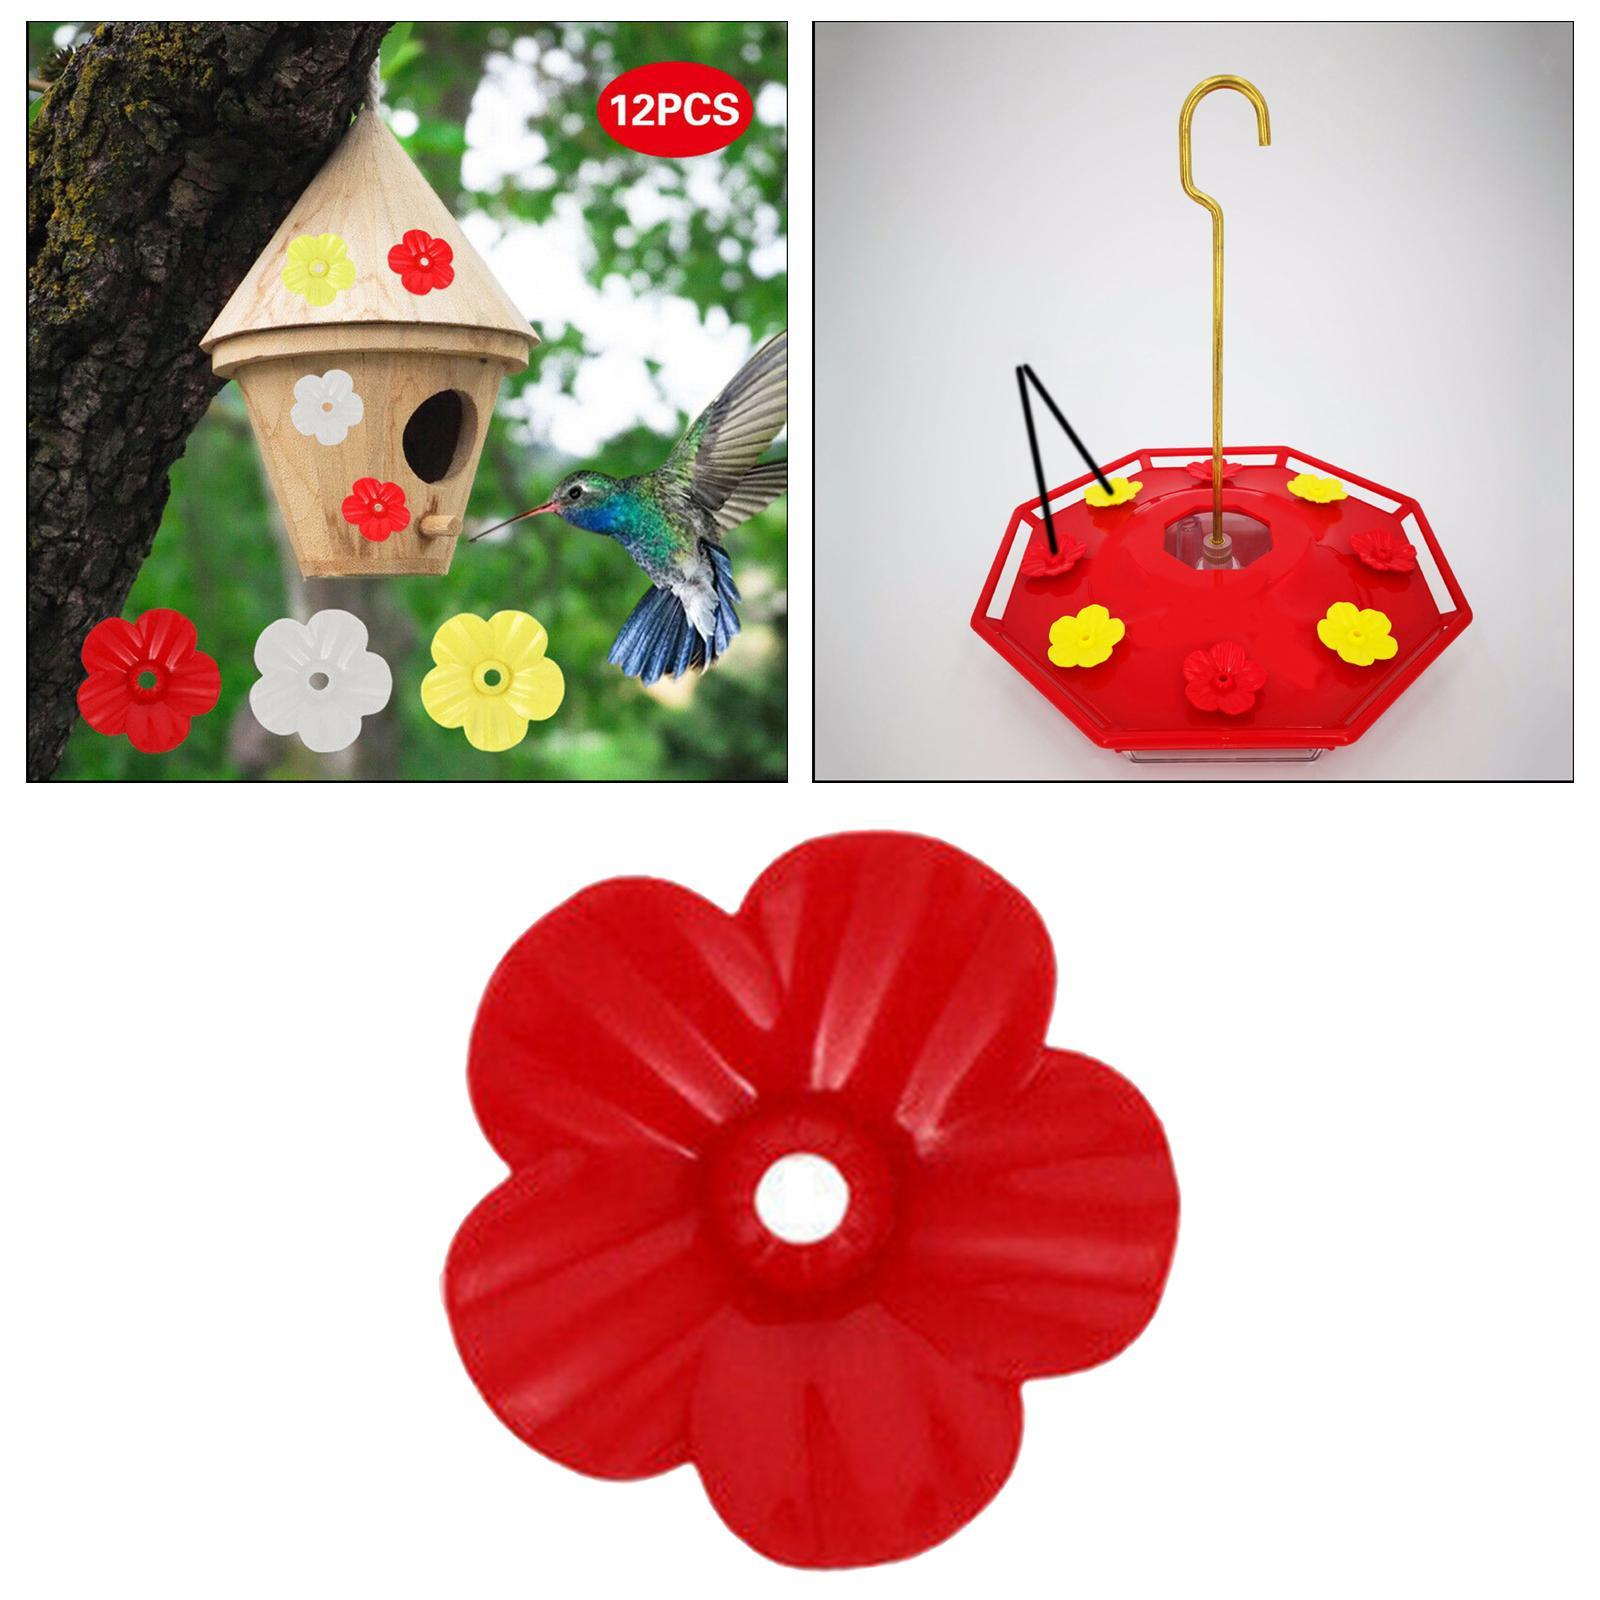 thumbnail 3 - Hanging hummingbird feeder replacement flower, feeding port, parts used supplies